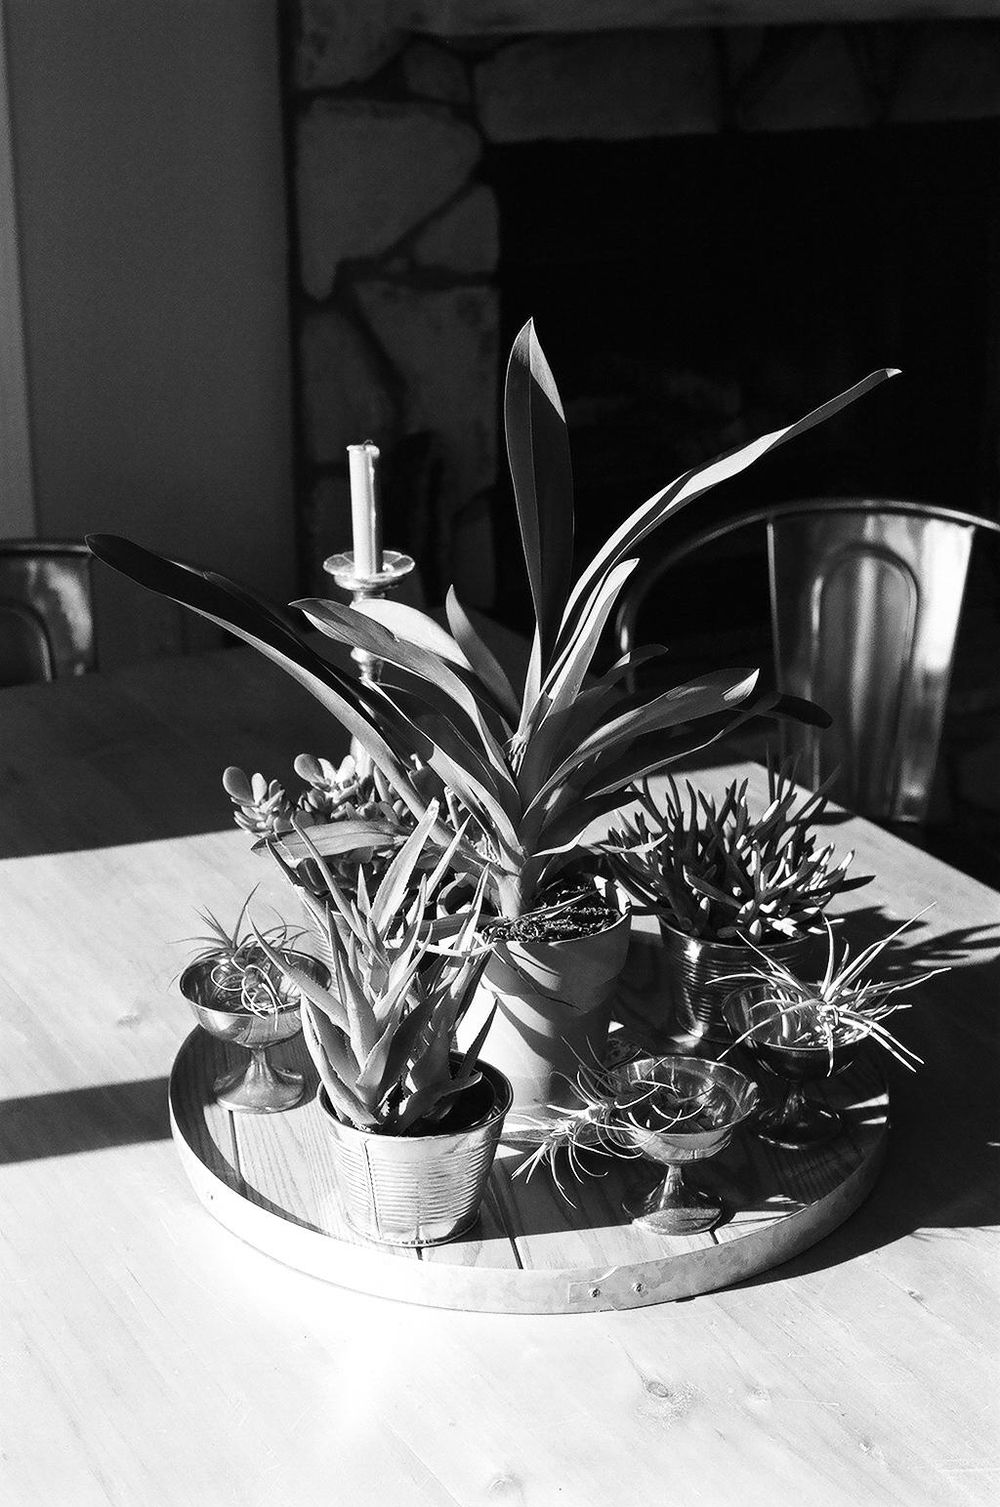 Northern CA in B&W - image 2 - student project